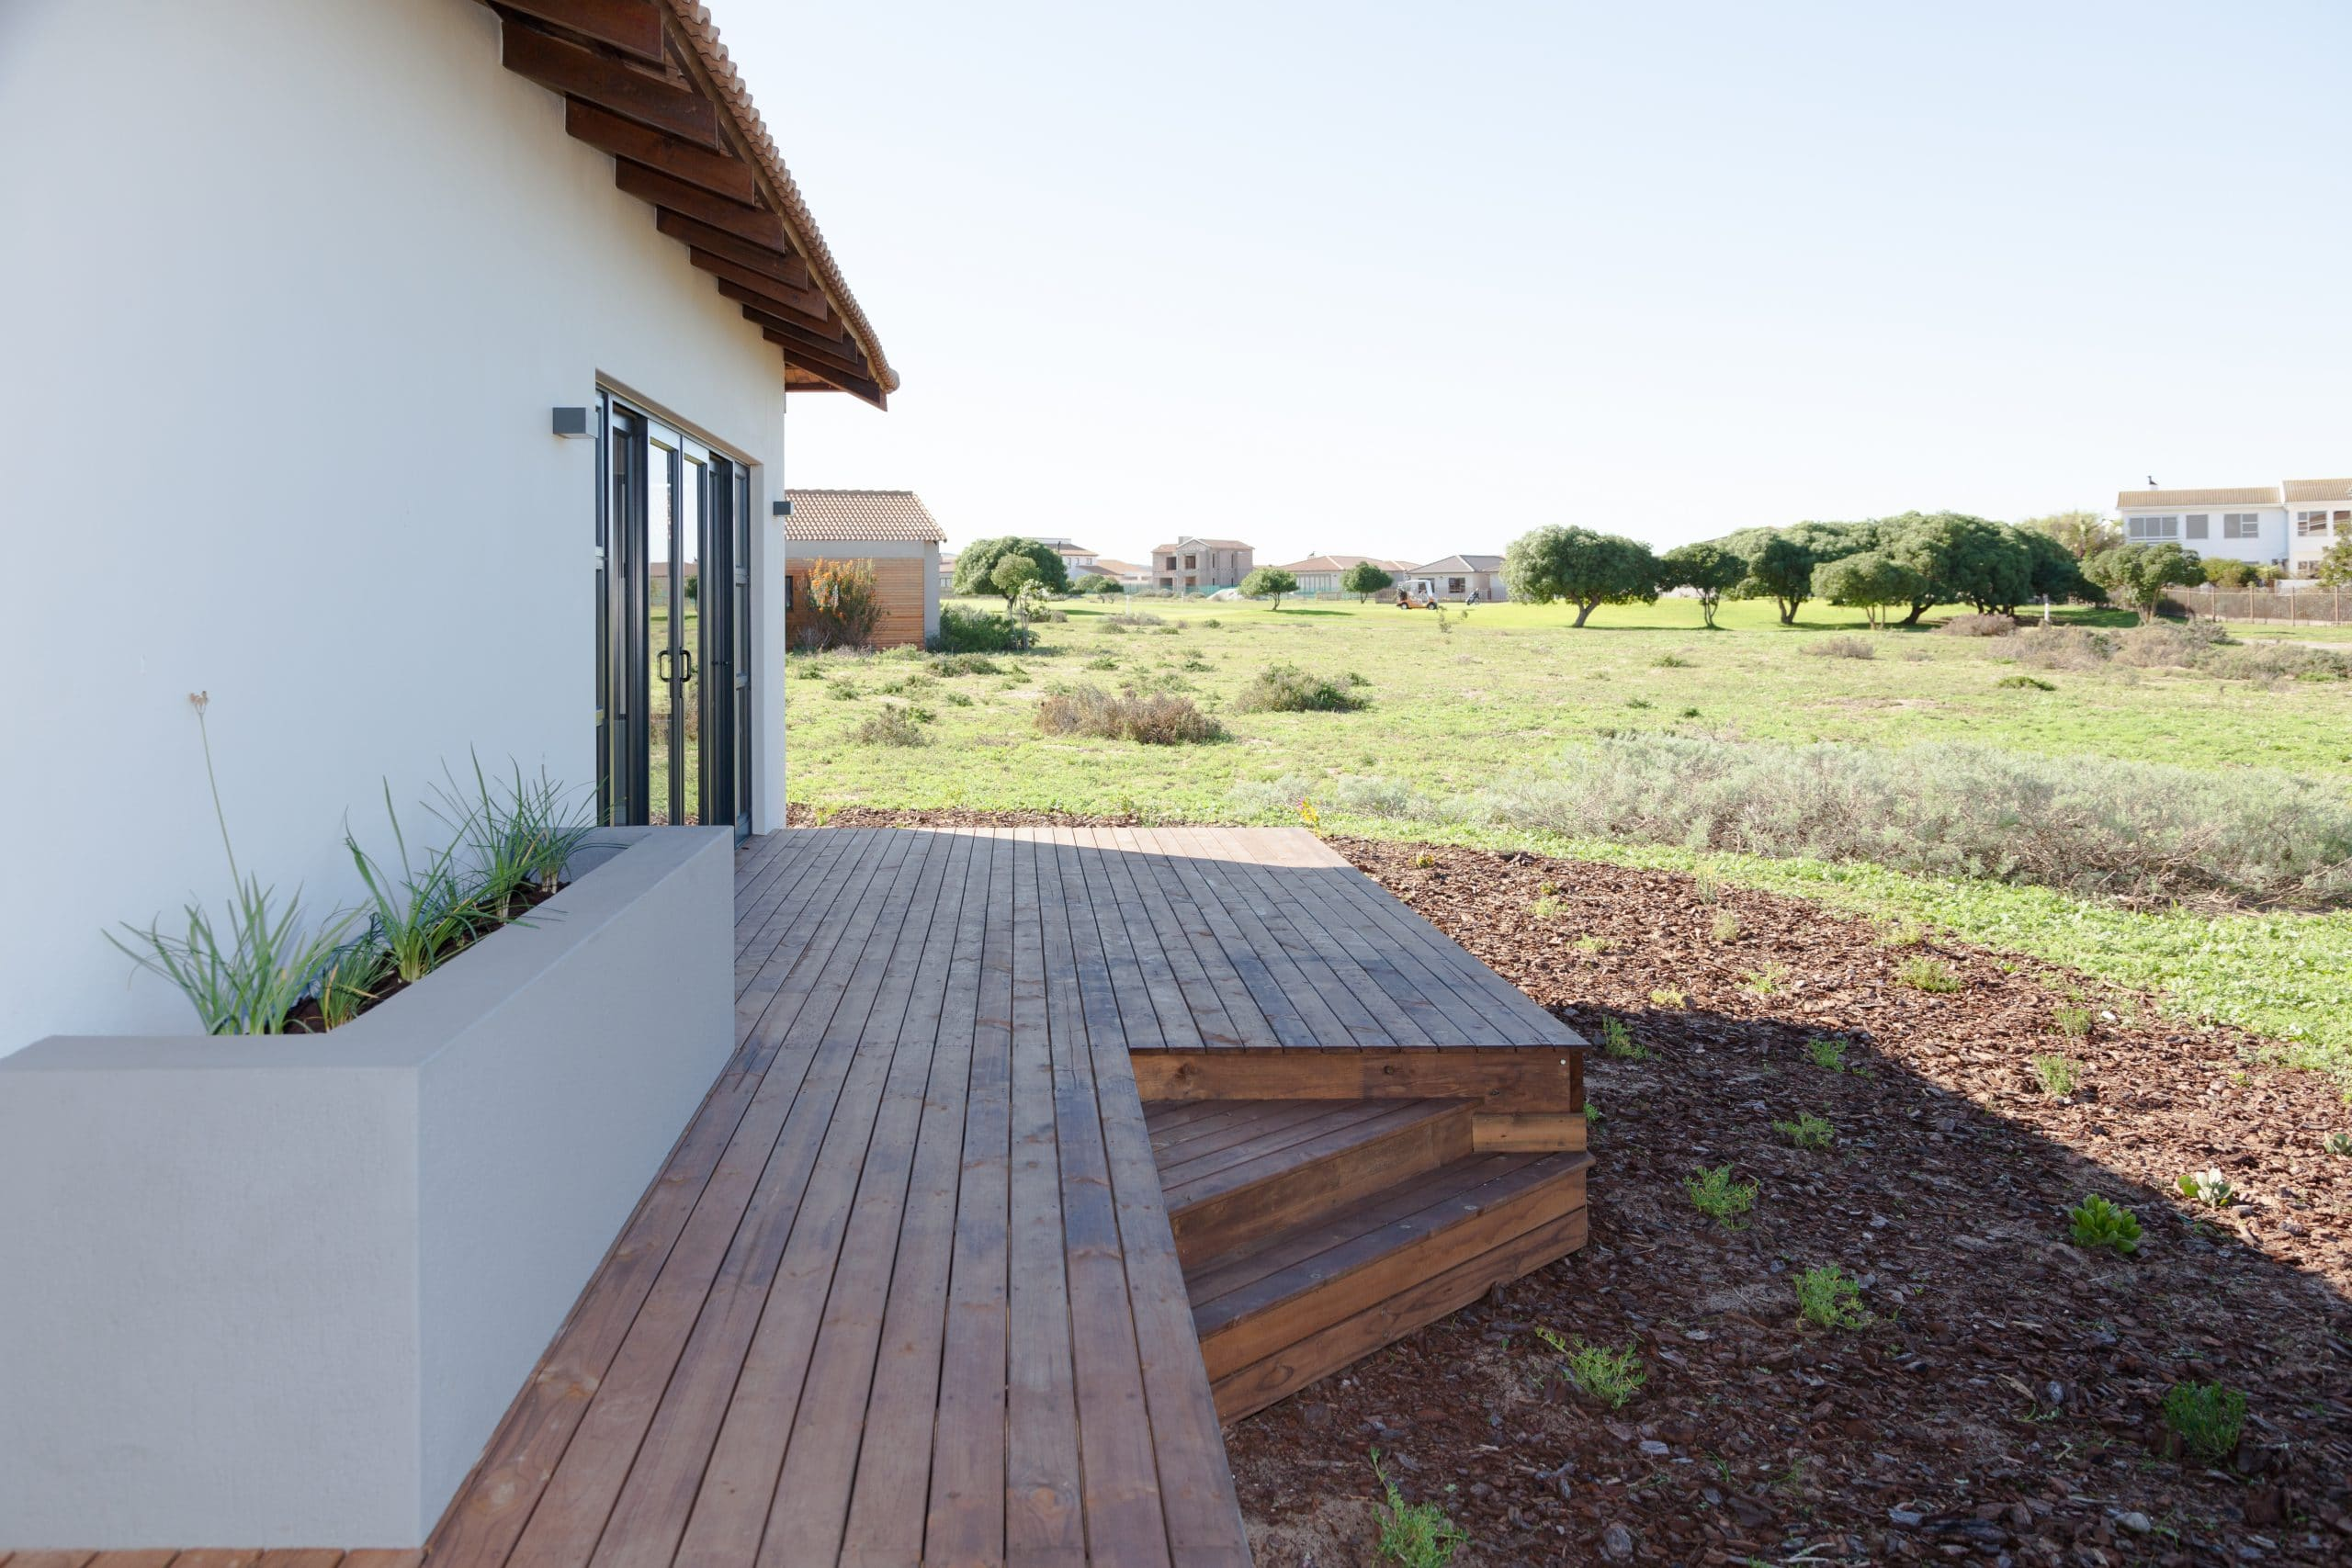 wooden timber decking overlooking golf course with flowerbox